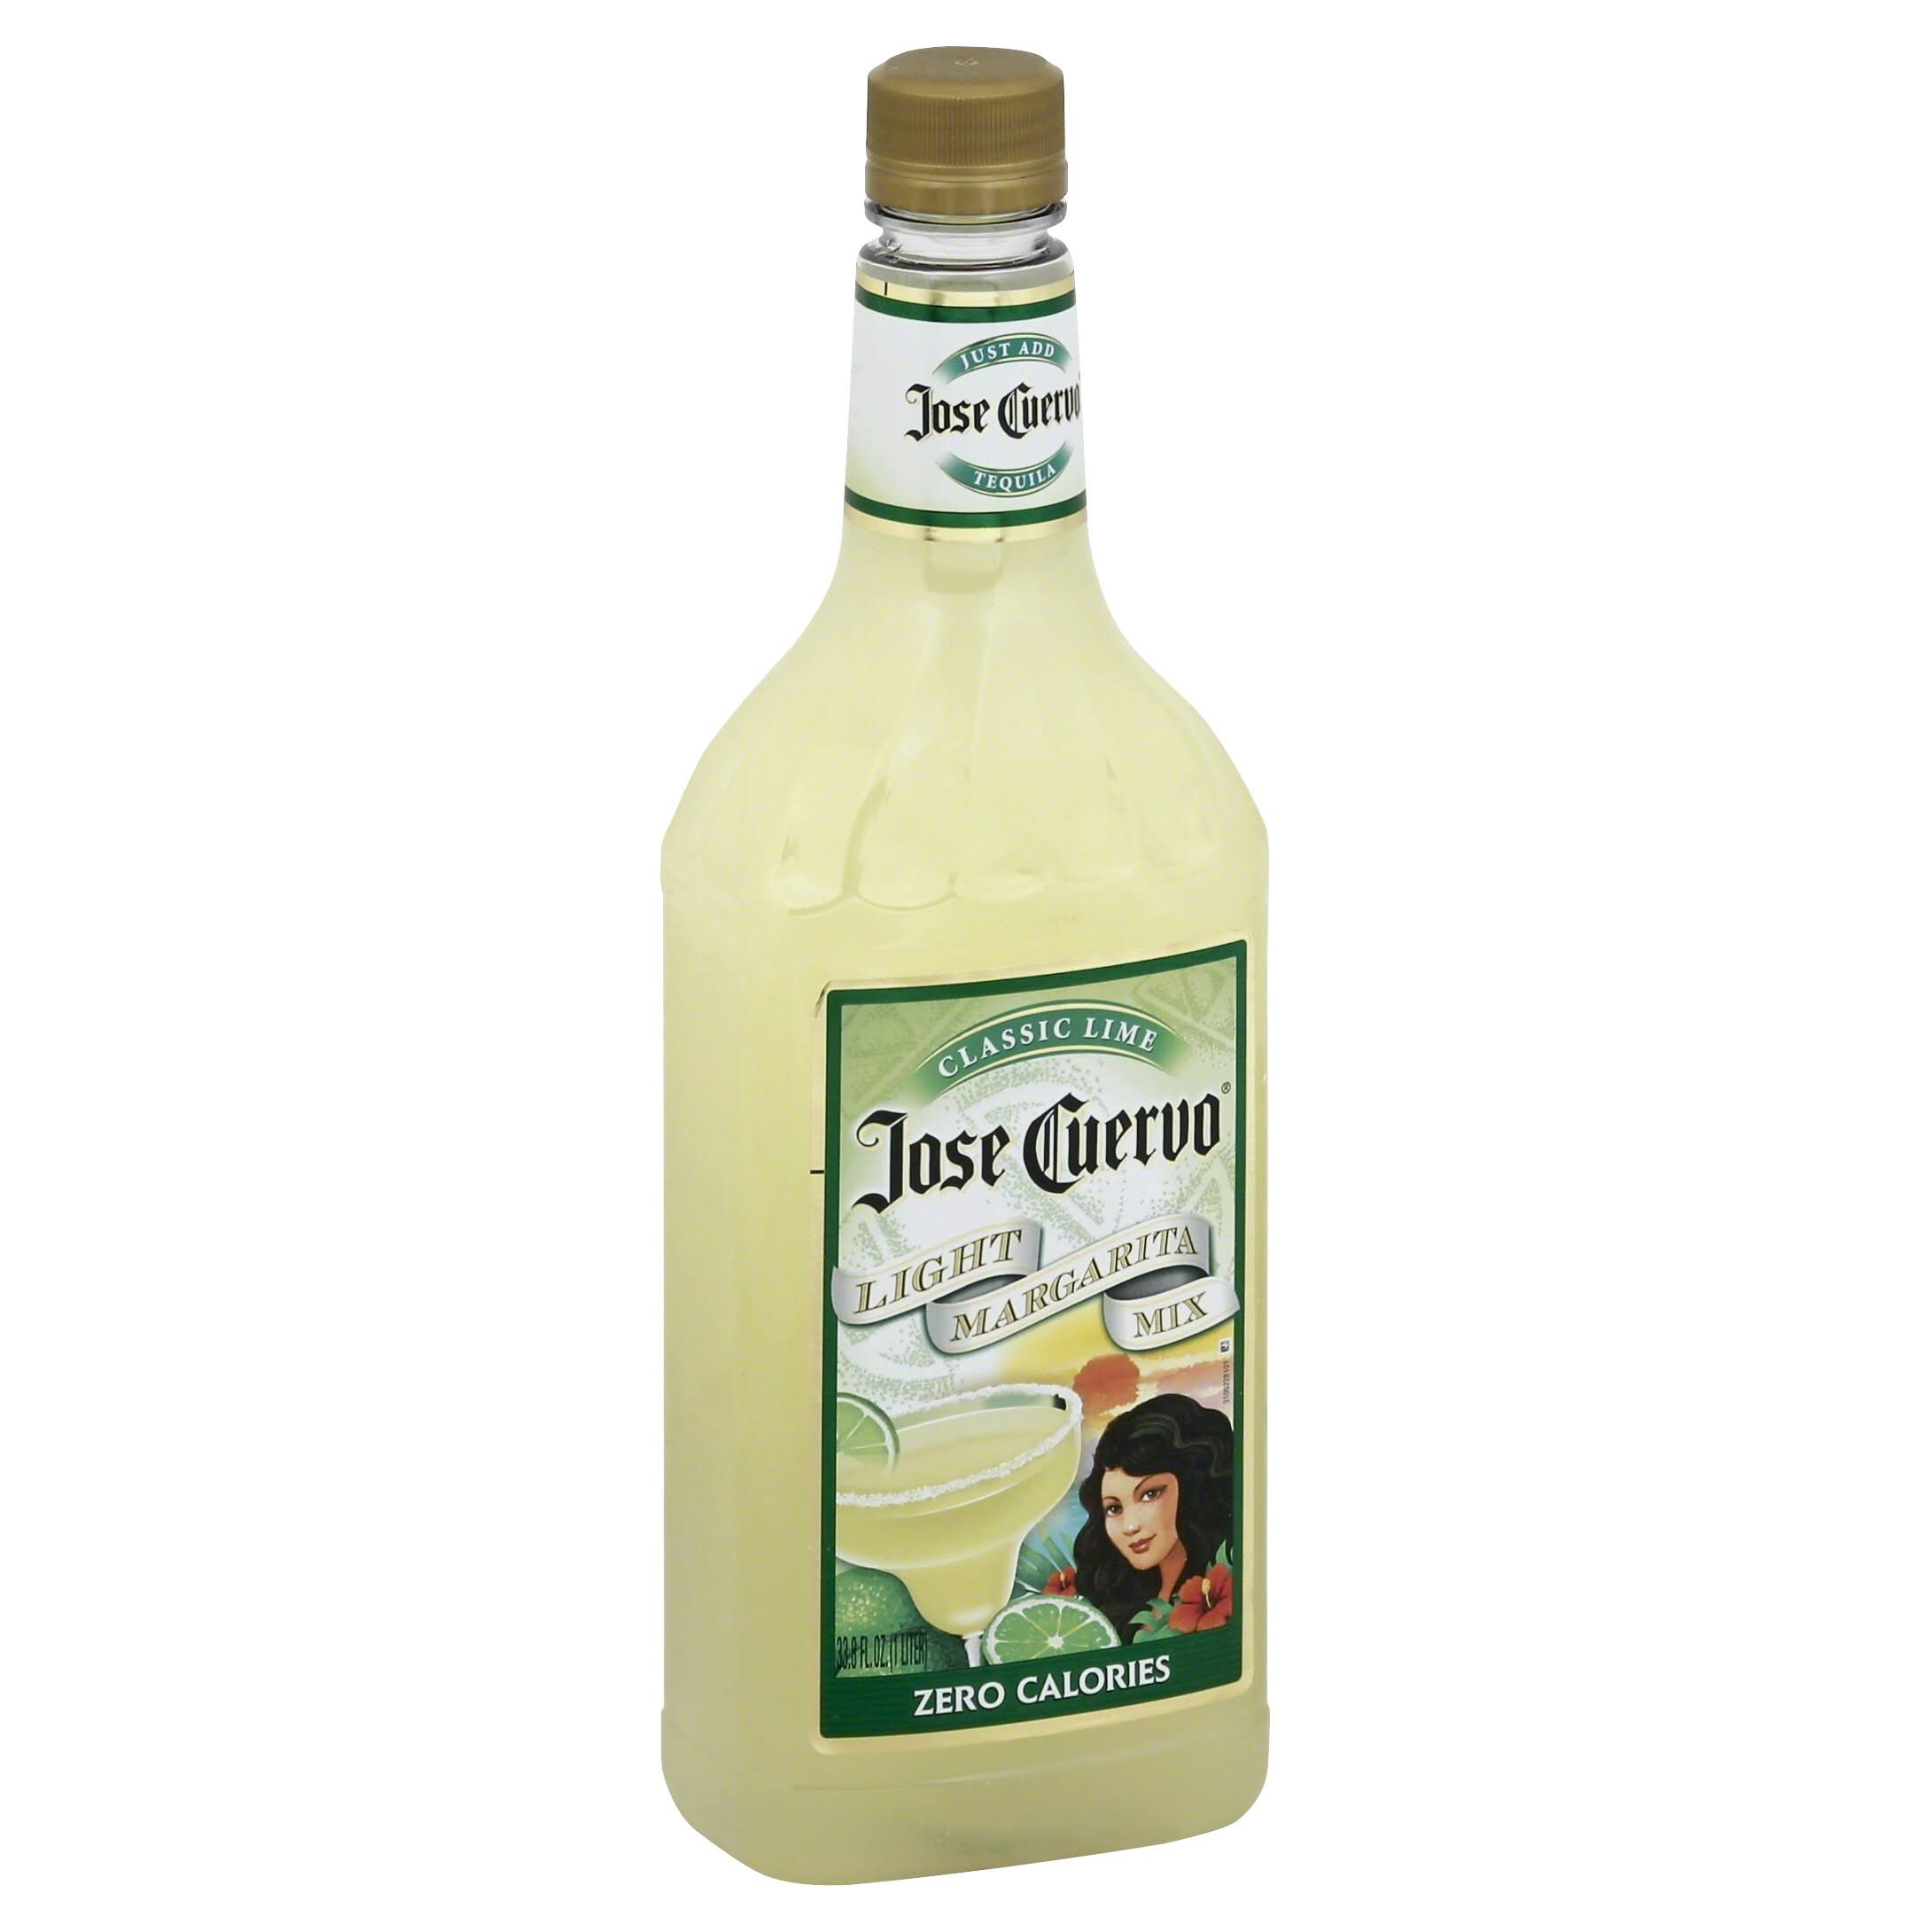 Jose Cuervo Light Margarita Mix - Classic Lime